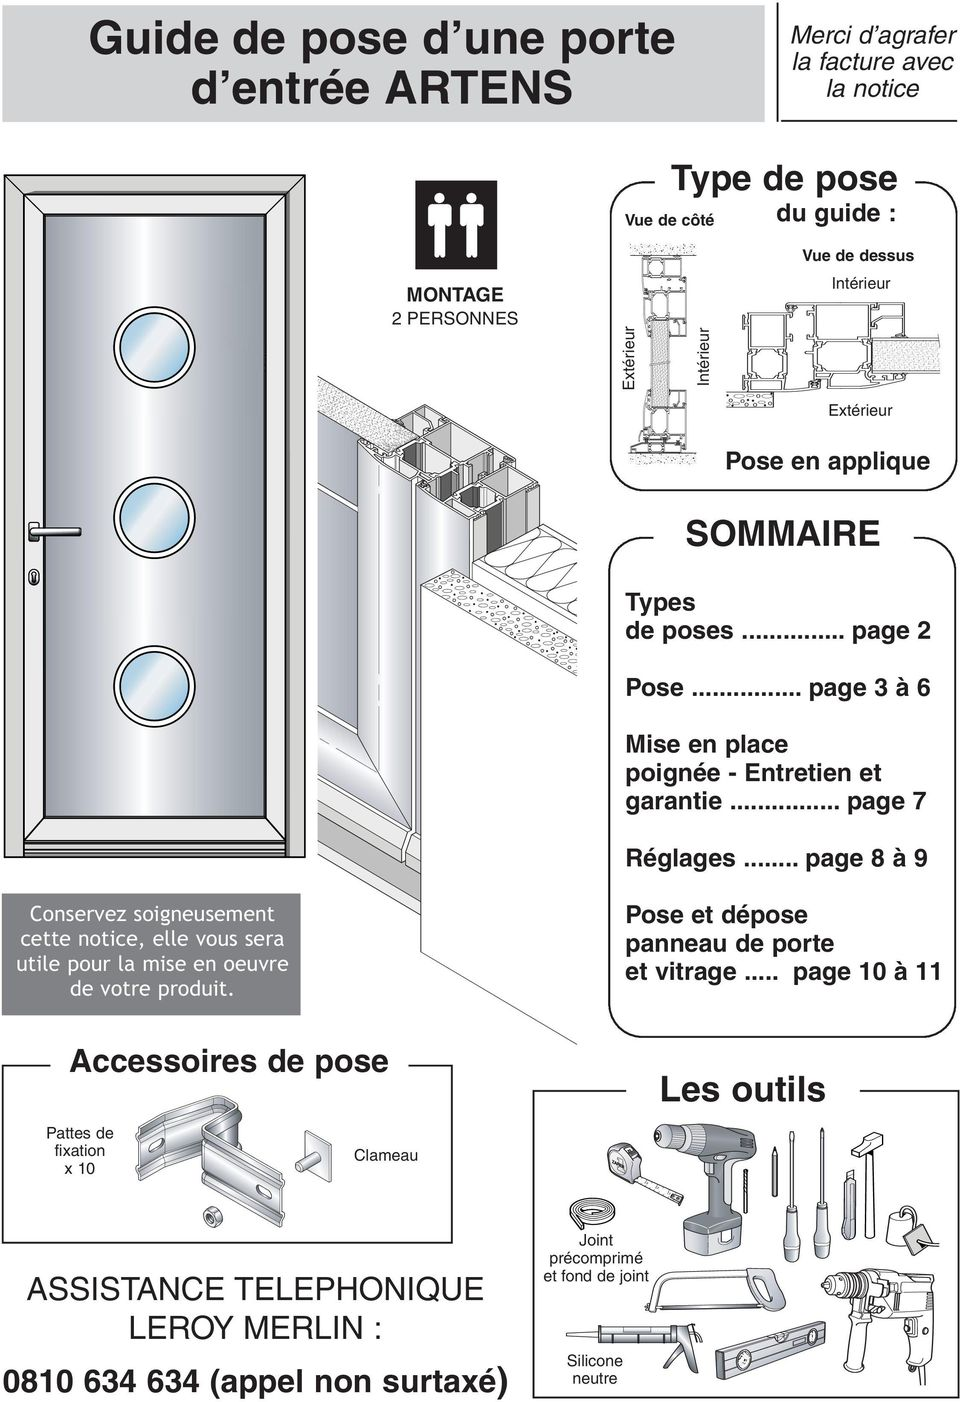 guide de pose d une porte d entr e artens pdf. Black Bedroom Furniture Sets. Home Design Ideas